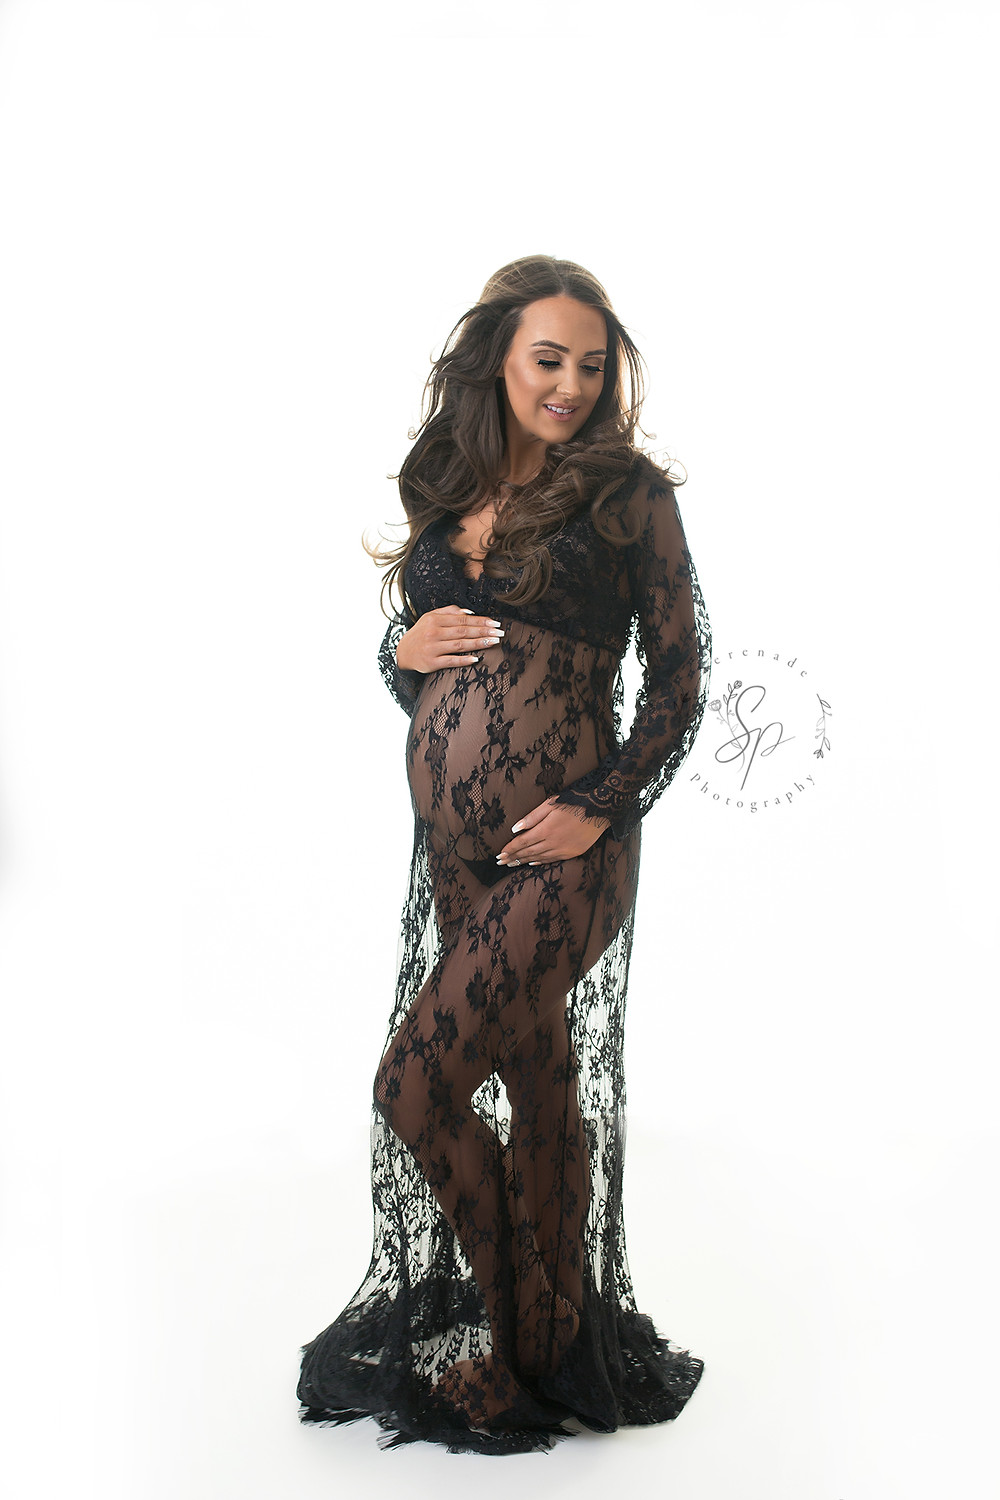 Professional maternity session Chester